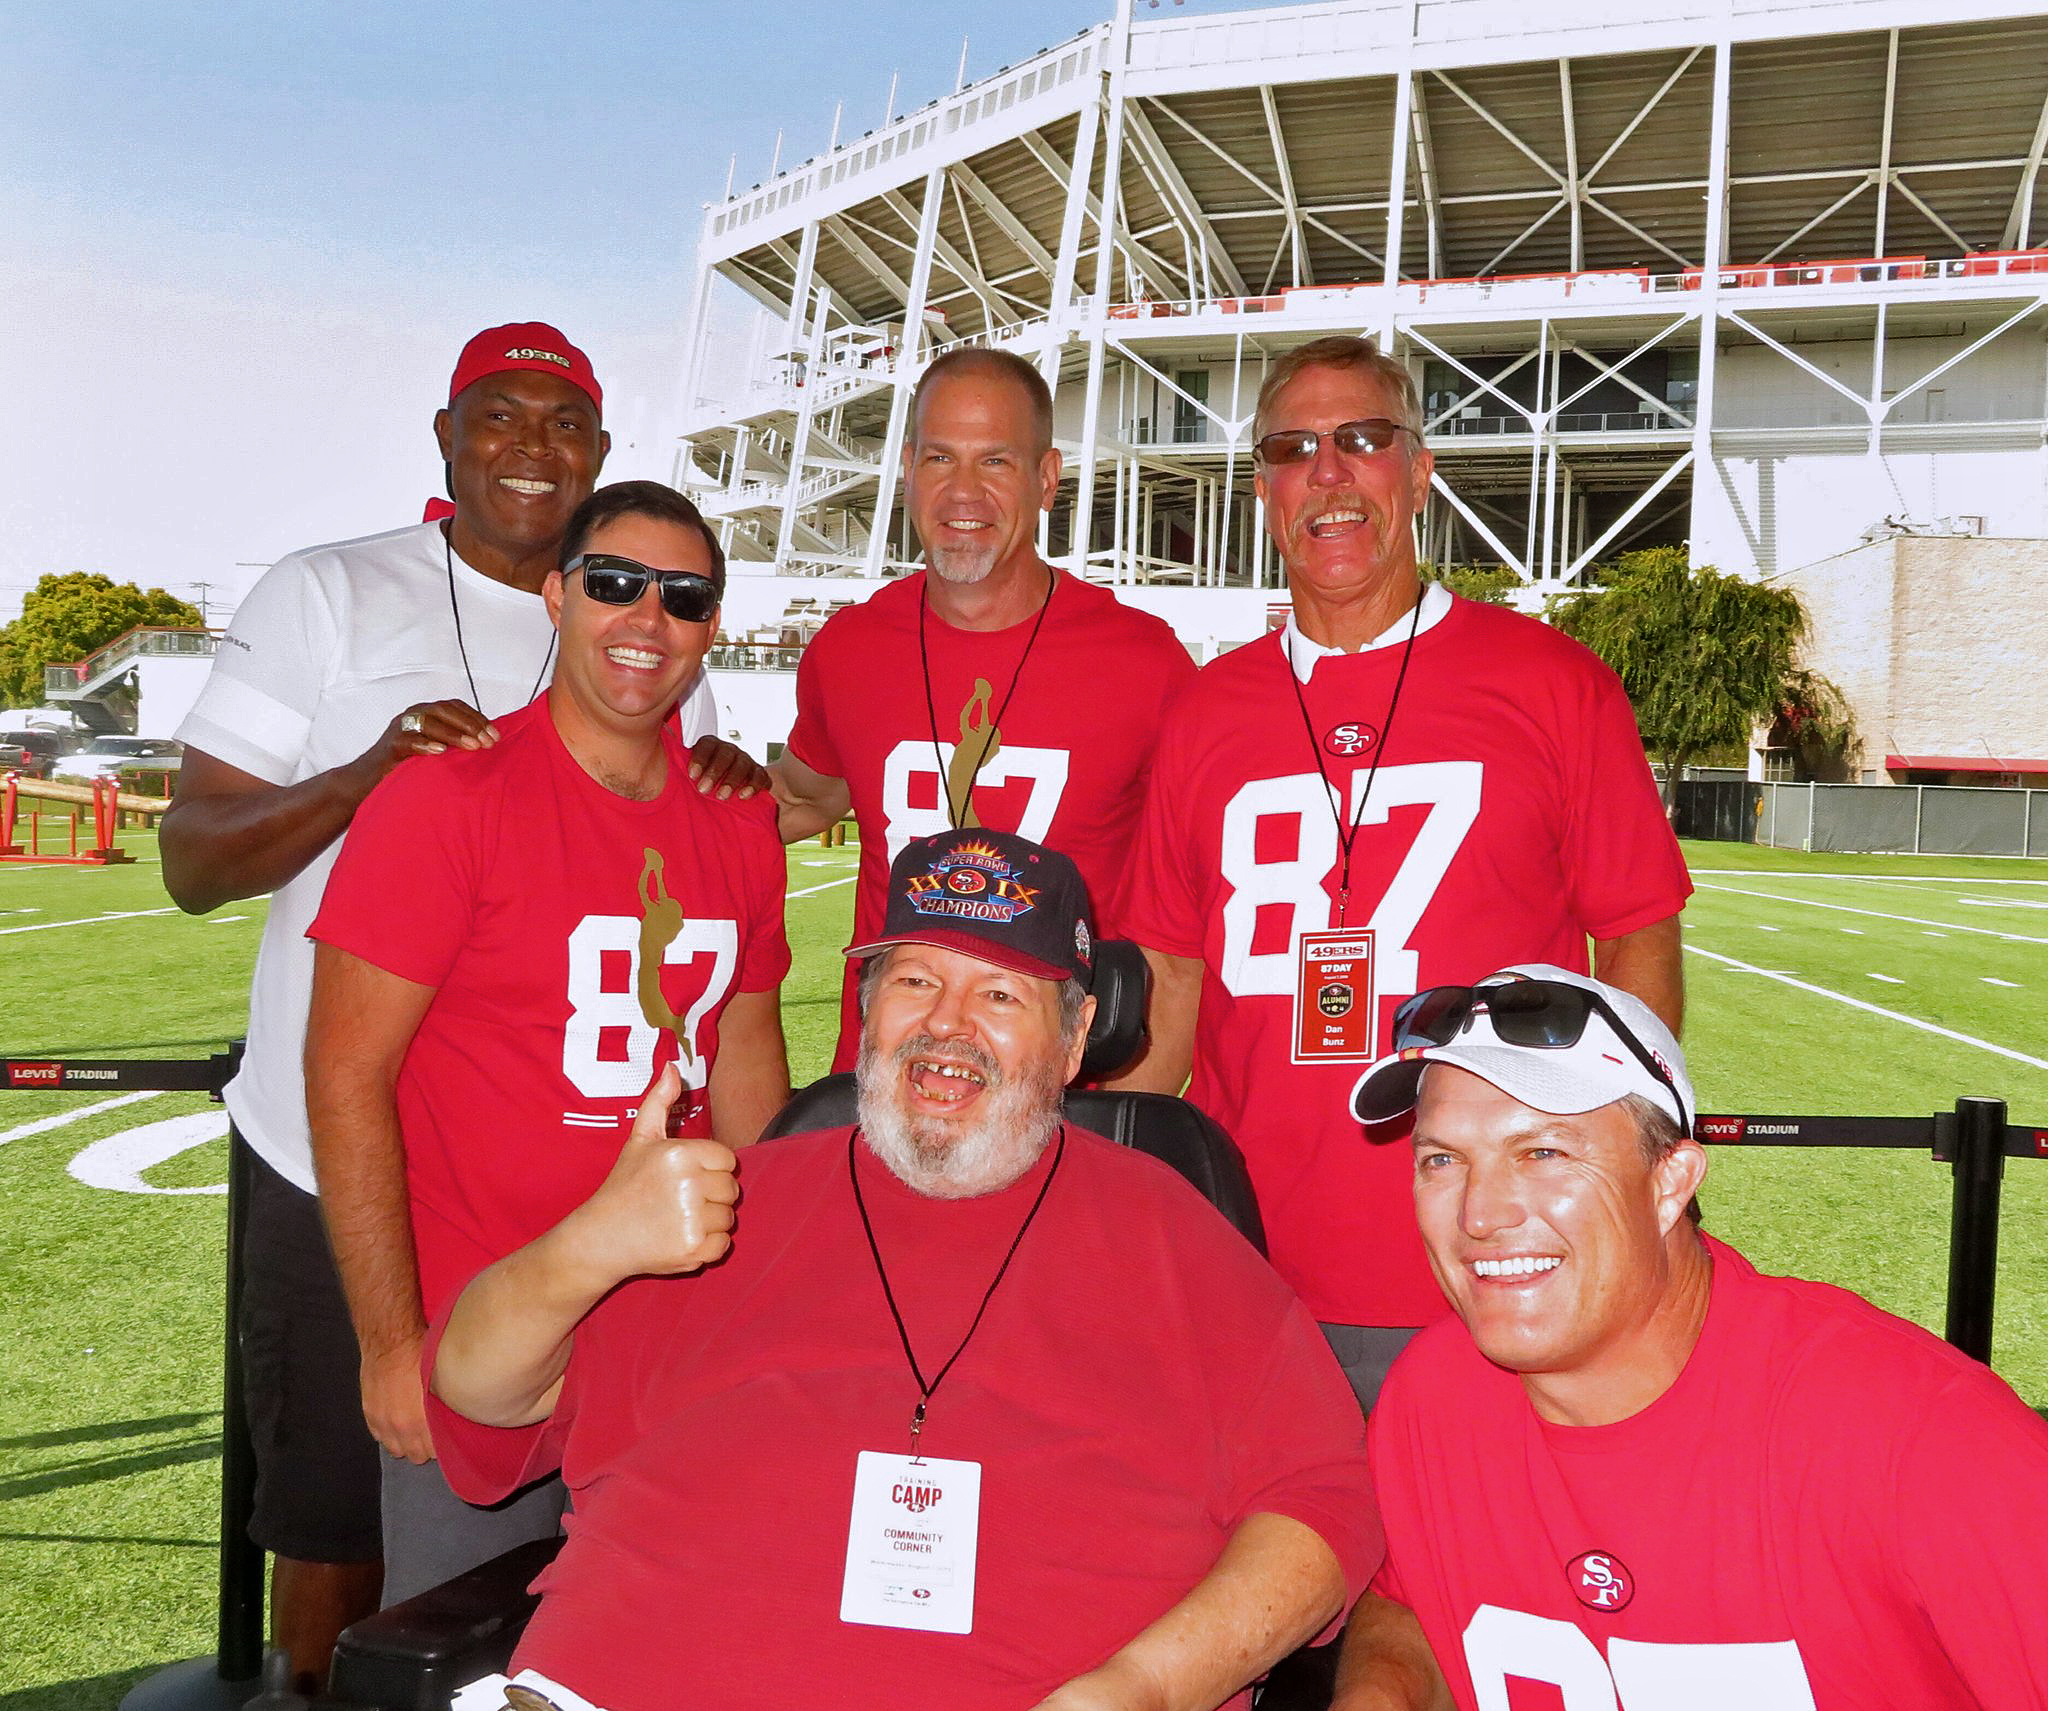 @MavoBooks - @MaioccoNBCS It was a pleasure to meet you on DC Day at the 49ers training camp.